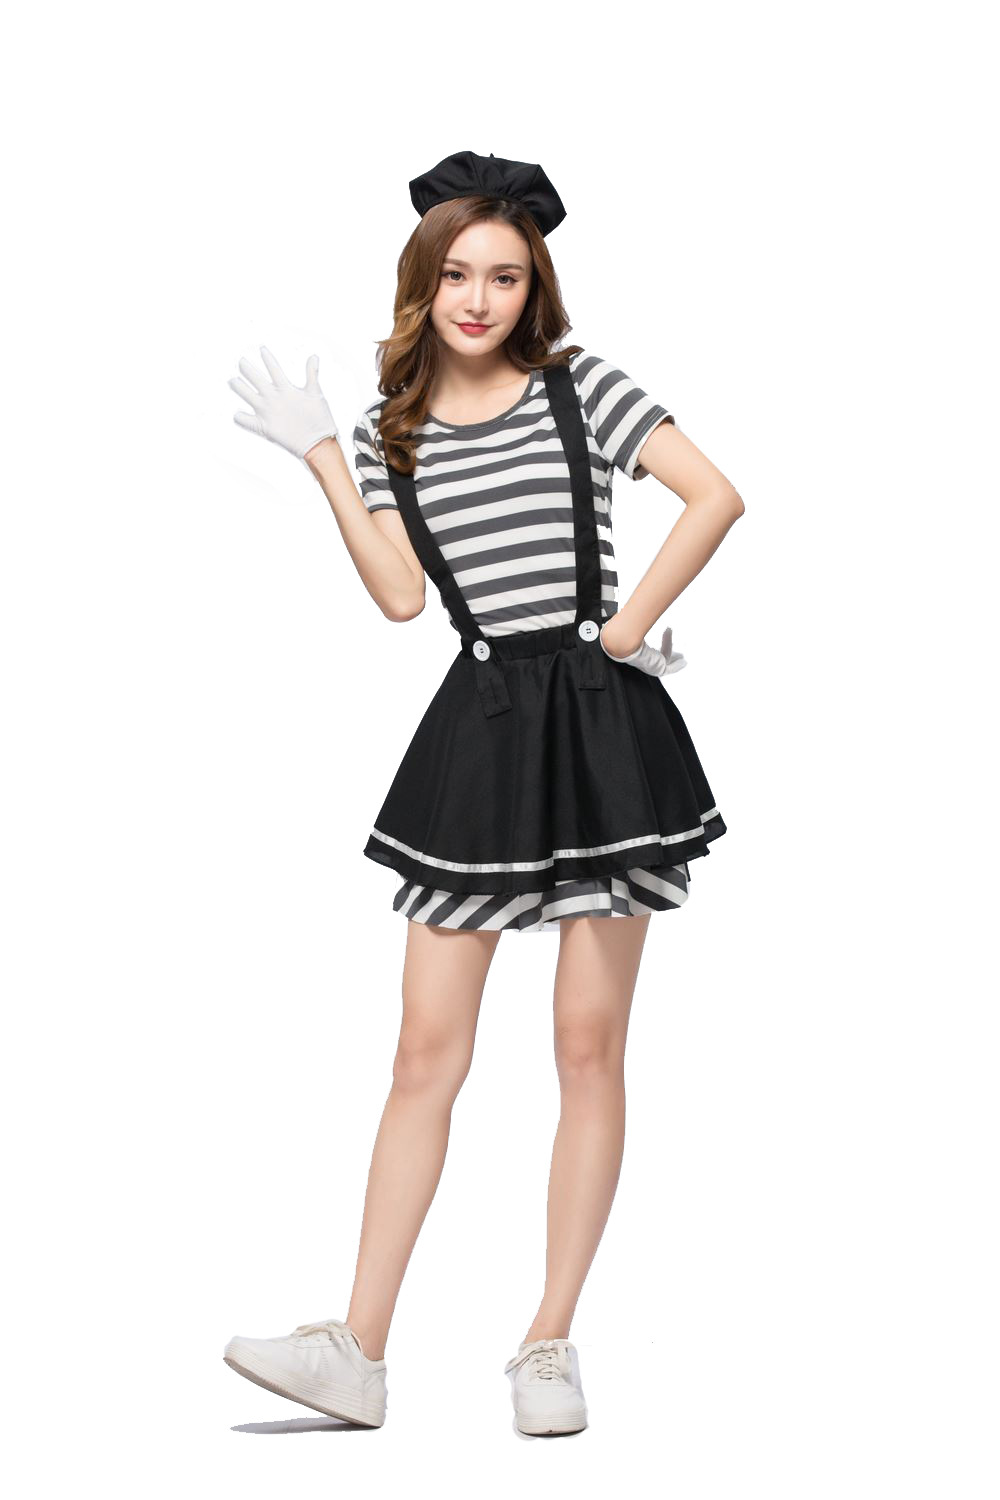 Japanese Lotte female Halloween role-playing costume striped prisoner exported to adult Amazon